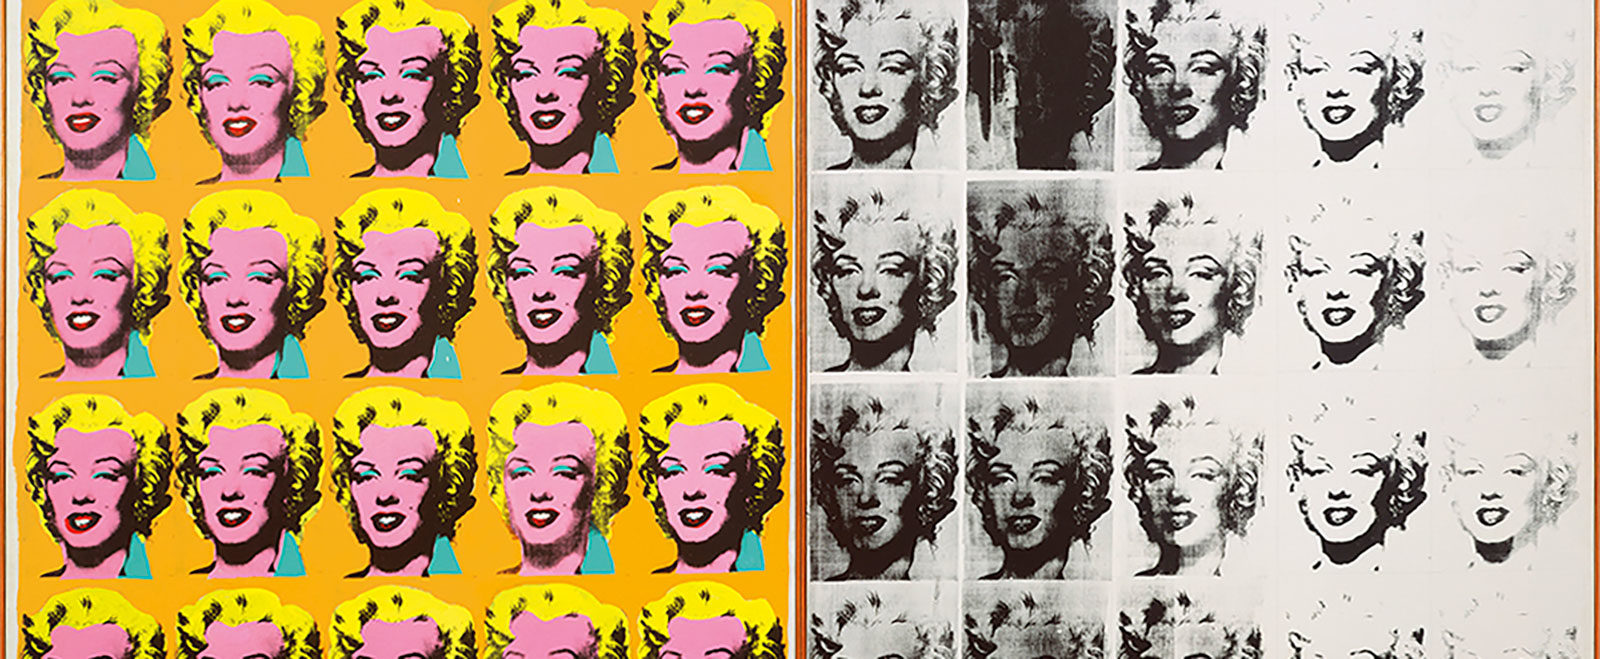 WARHOL, TILLMANS & MORE: MUST-SEE FALL EXHIBITIONS